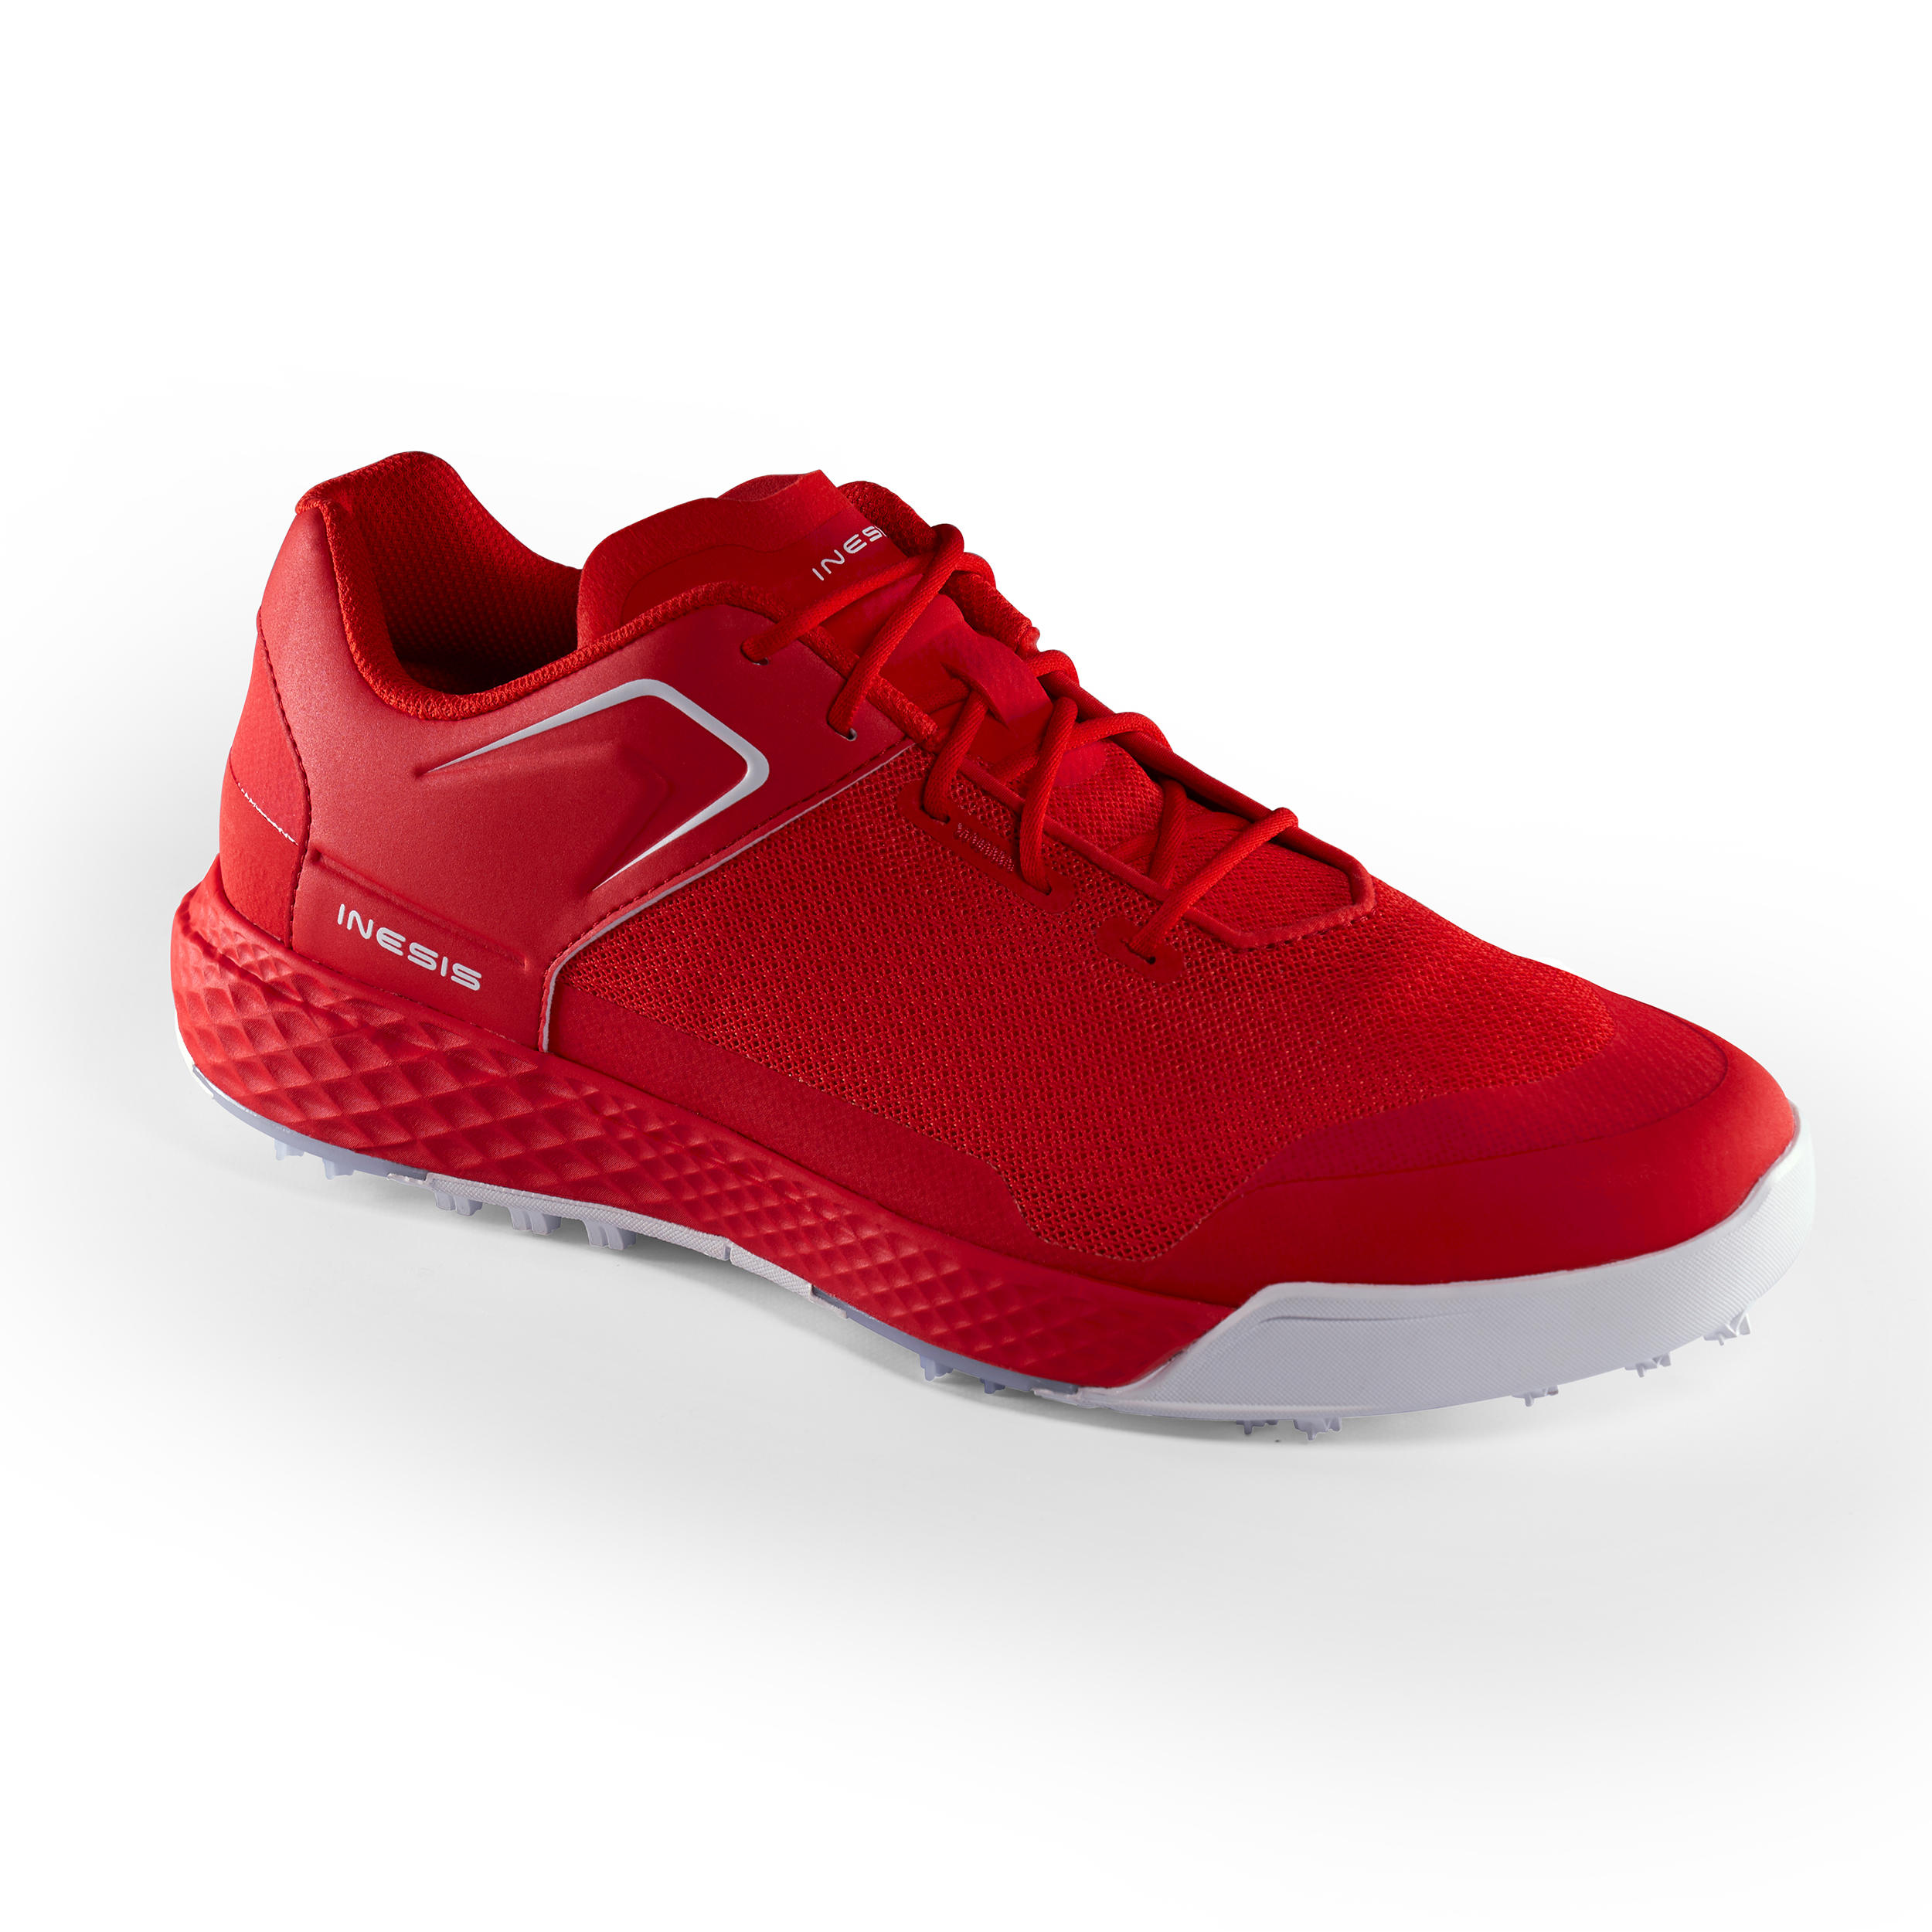 CHAUSSURES GOLF HOMME GRIP DRY ROUGES - Inesis